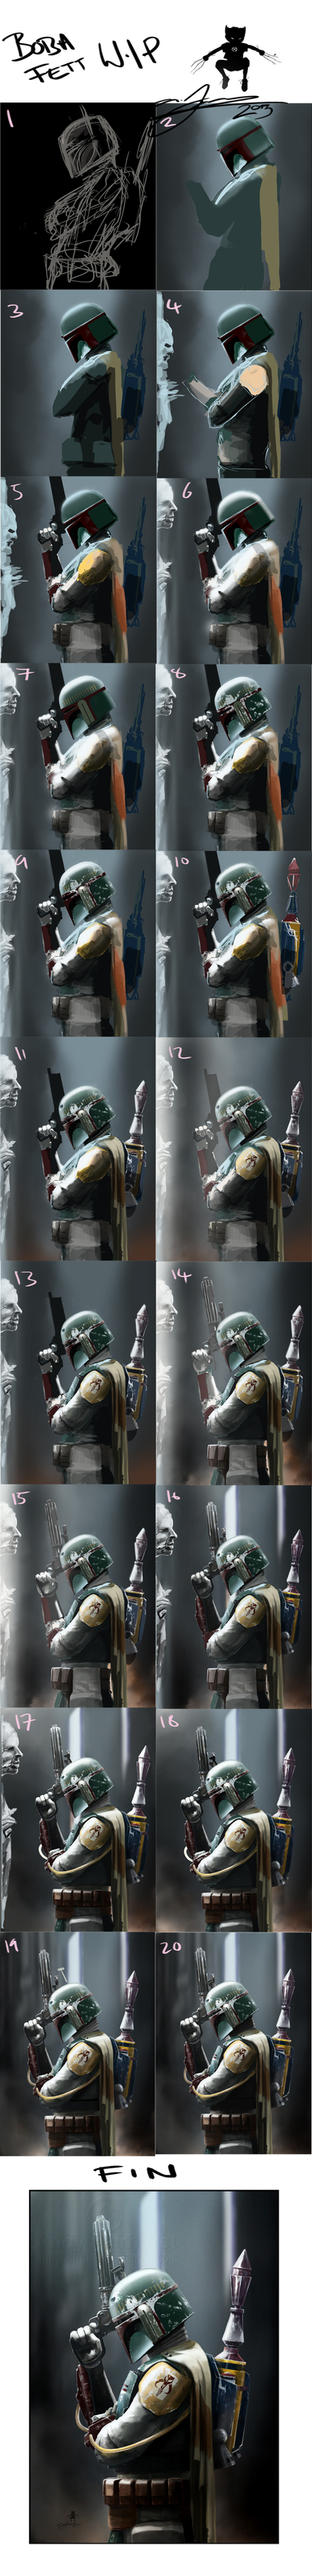 Boba Fett : Bounty Hunter W.I.P Stages by AndyFairhurst